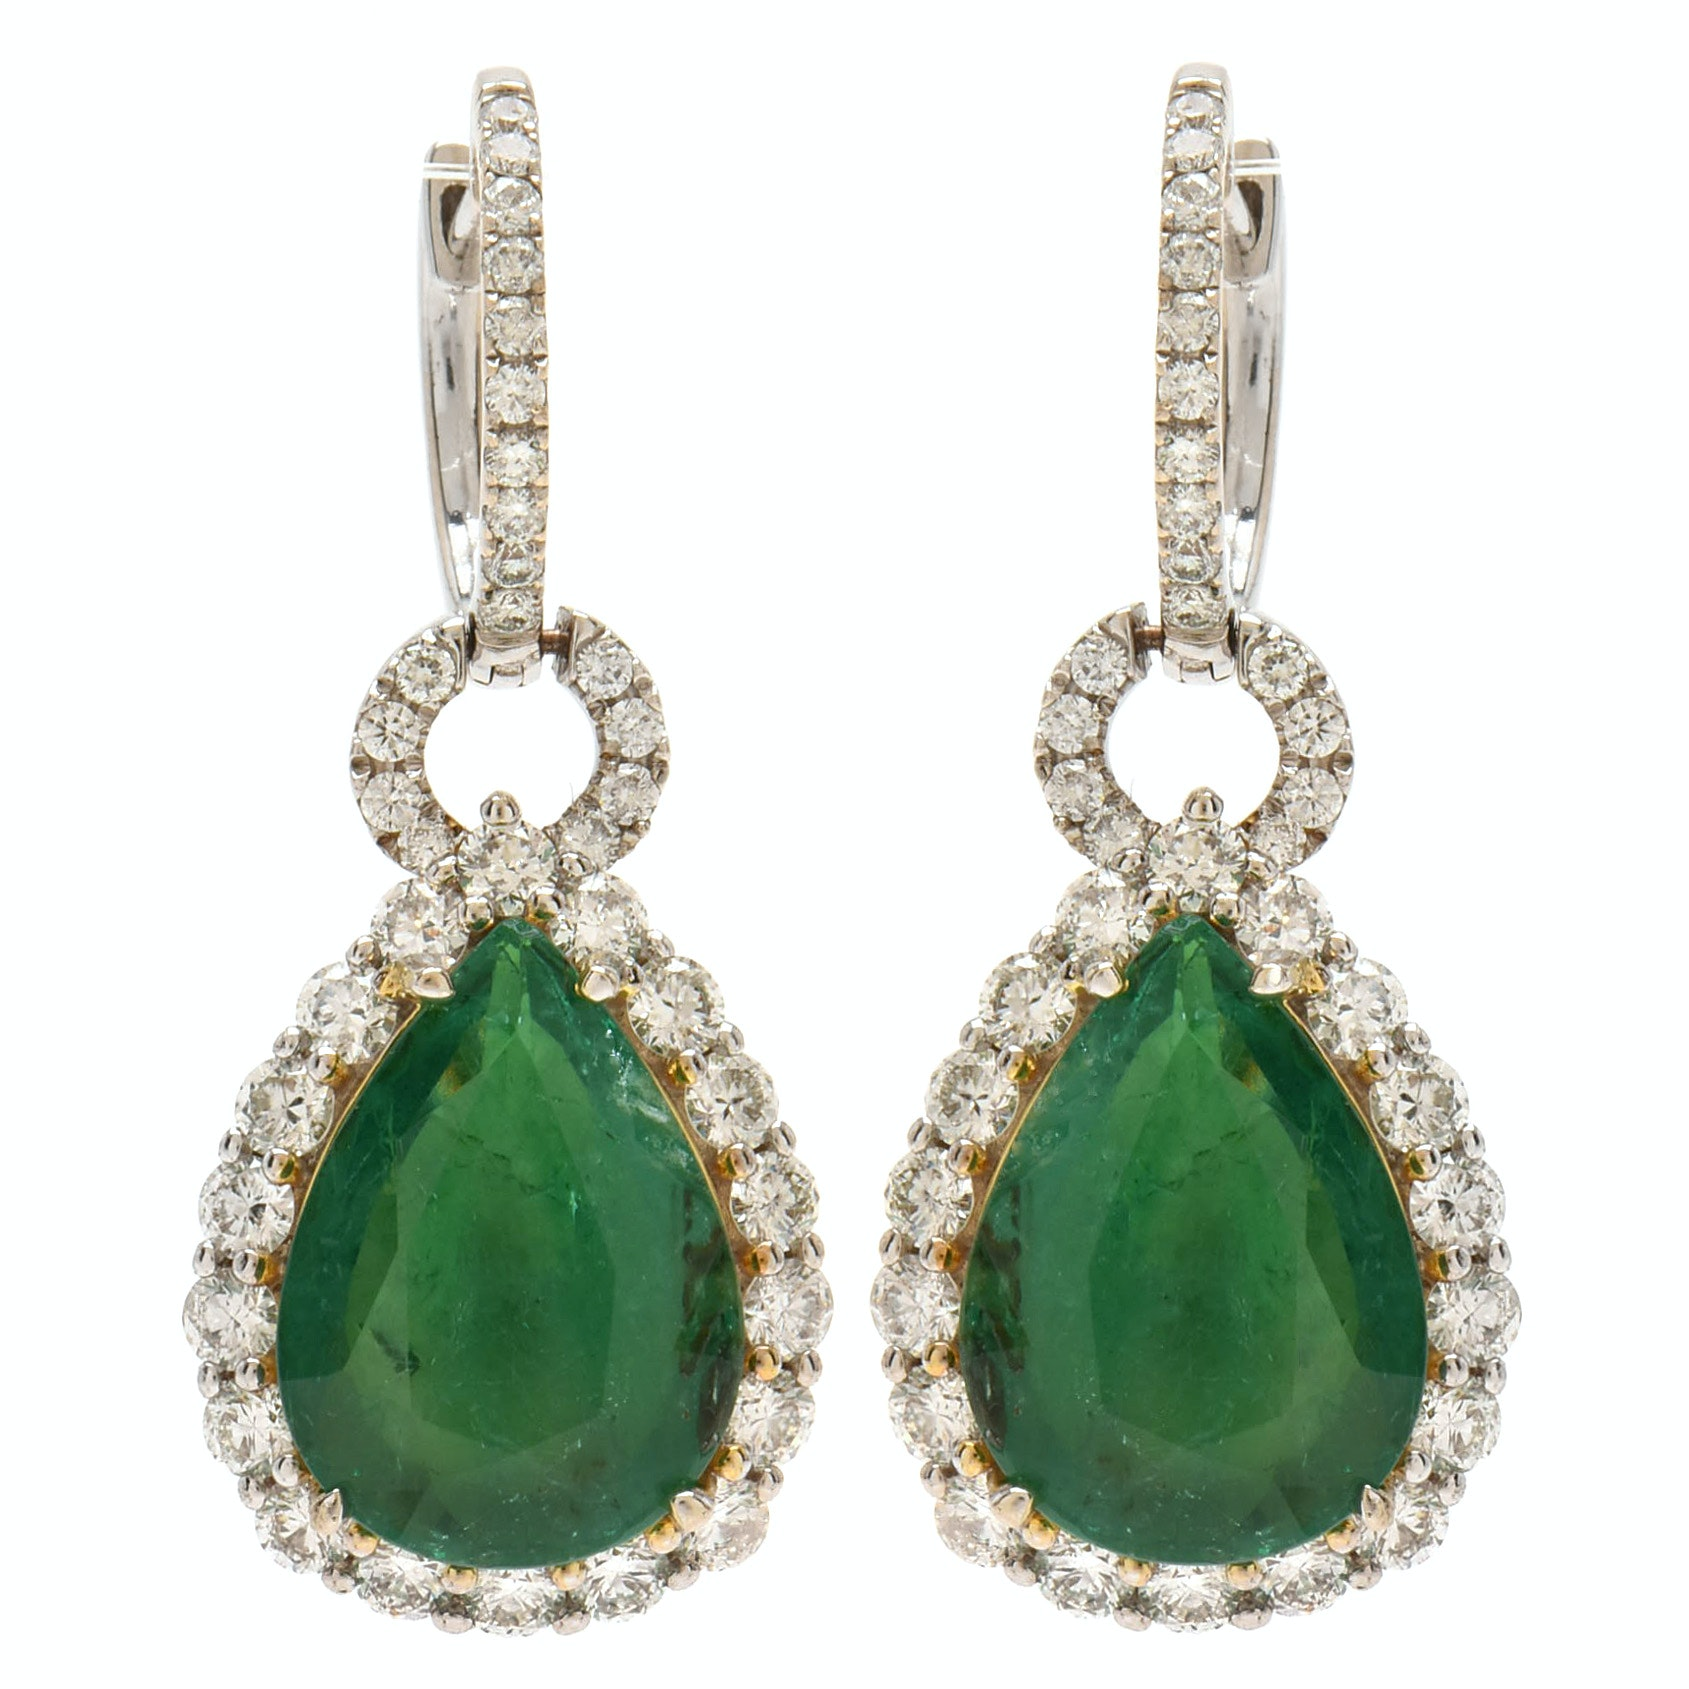 14K and 18K White Gold 9.63 CTW Emerald and 2.56 CTW Diamond Drop Earrings